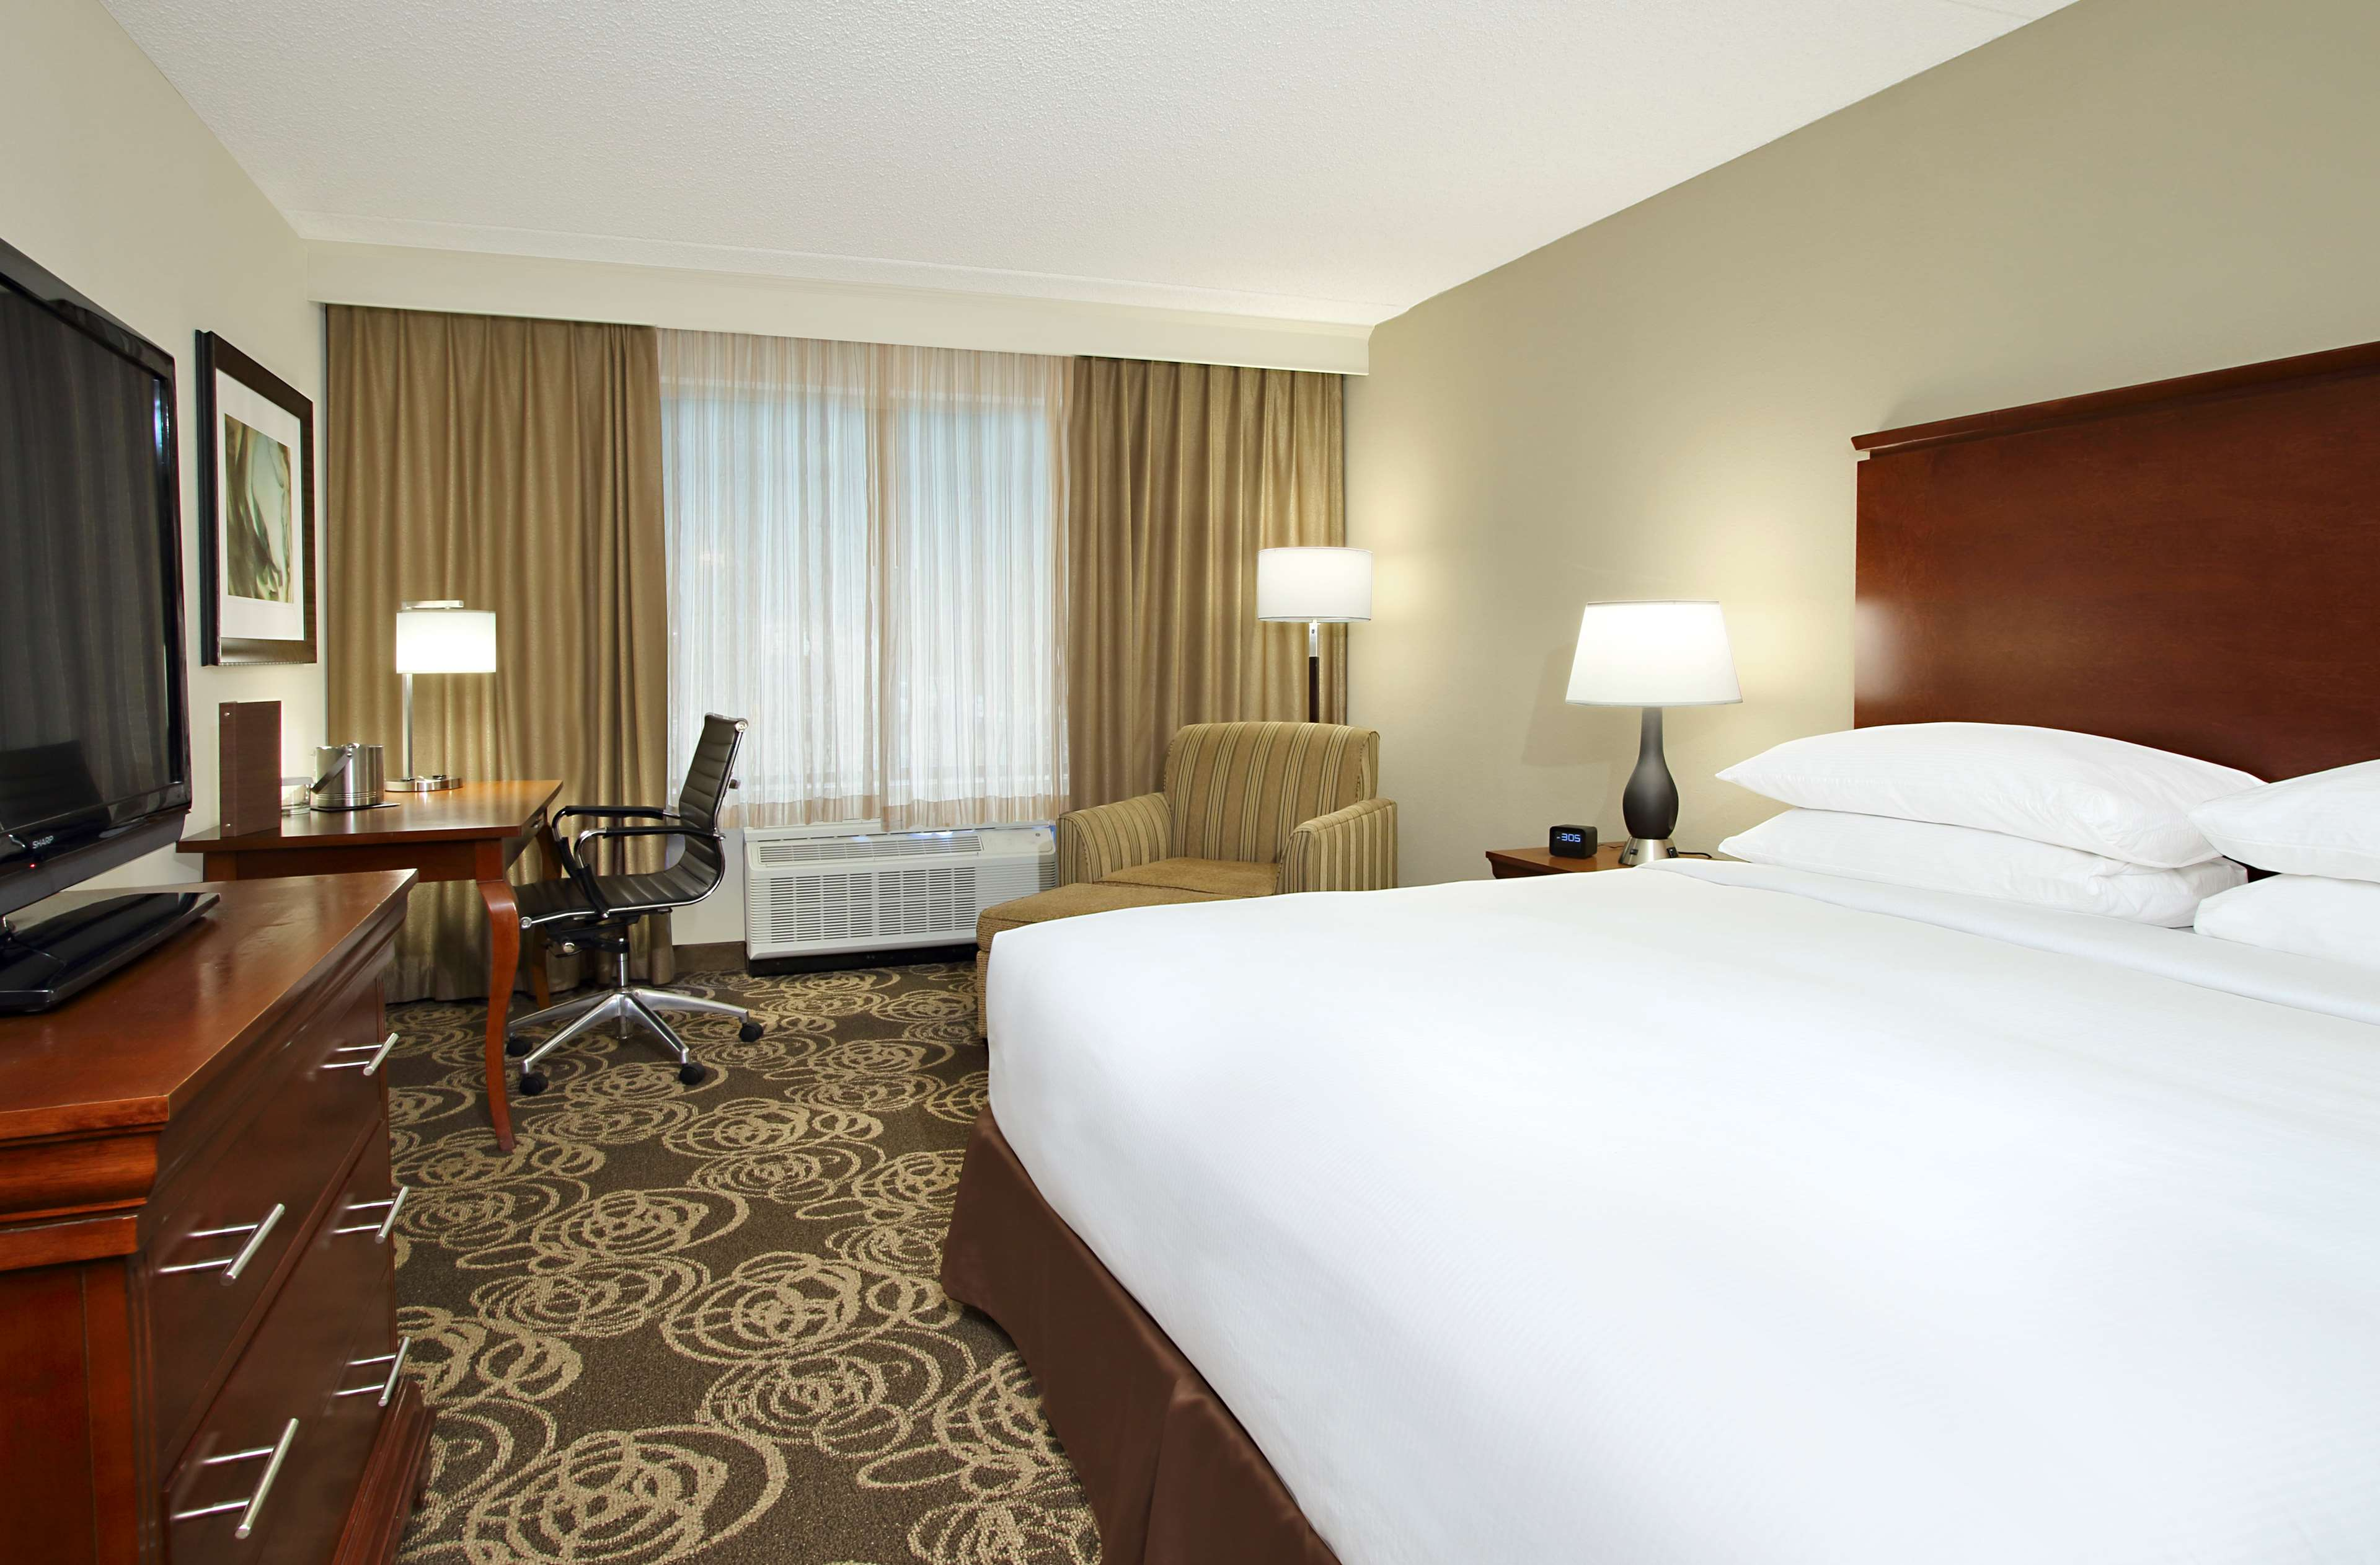 DoubleTree by Hilton Hotel Mahwah image 22